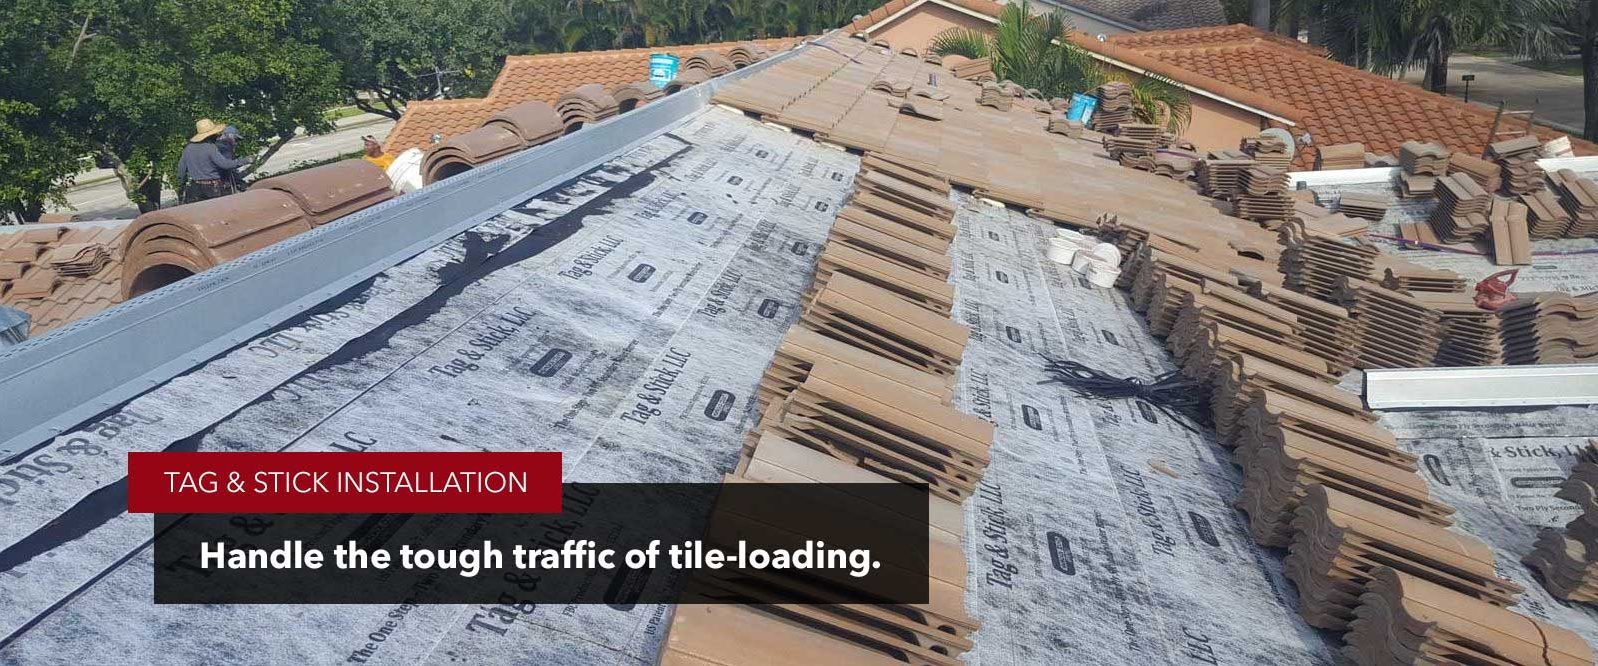 adhesive underlayment can handle tile-loading